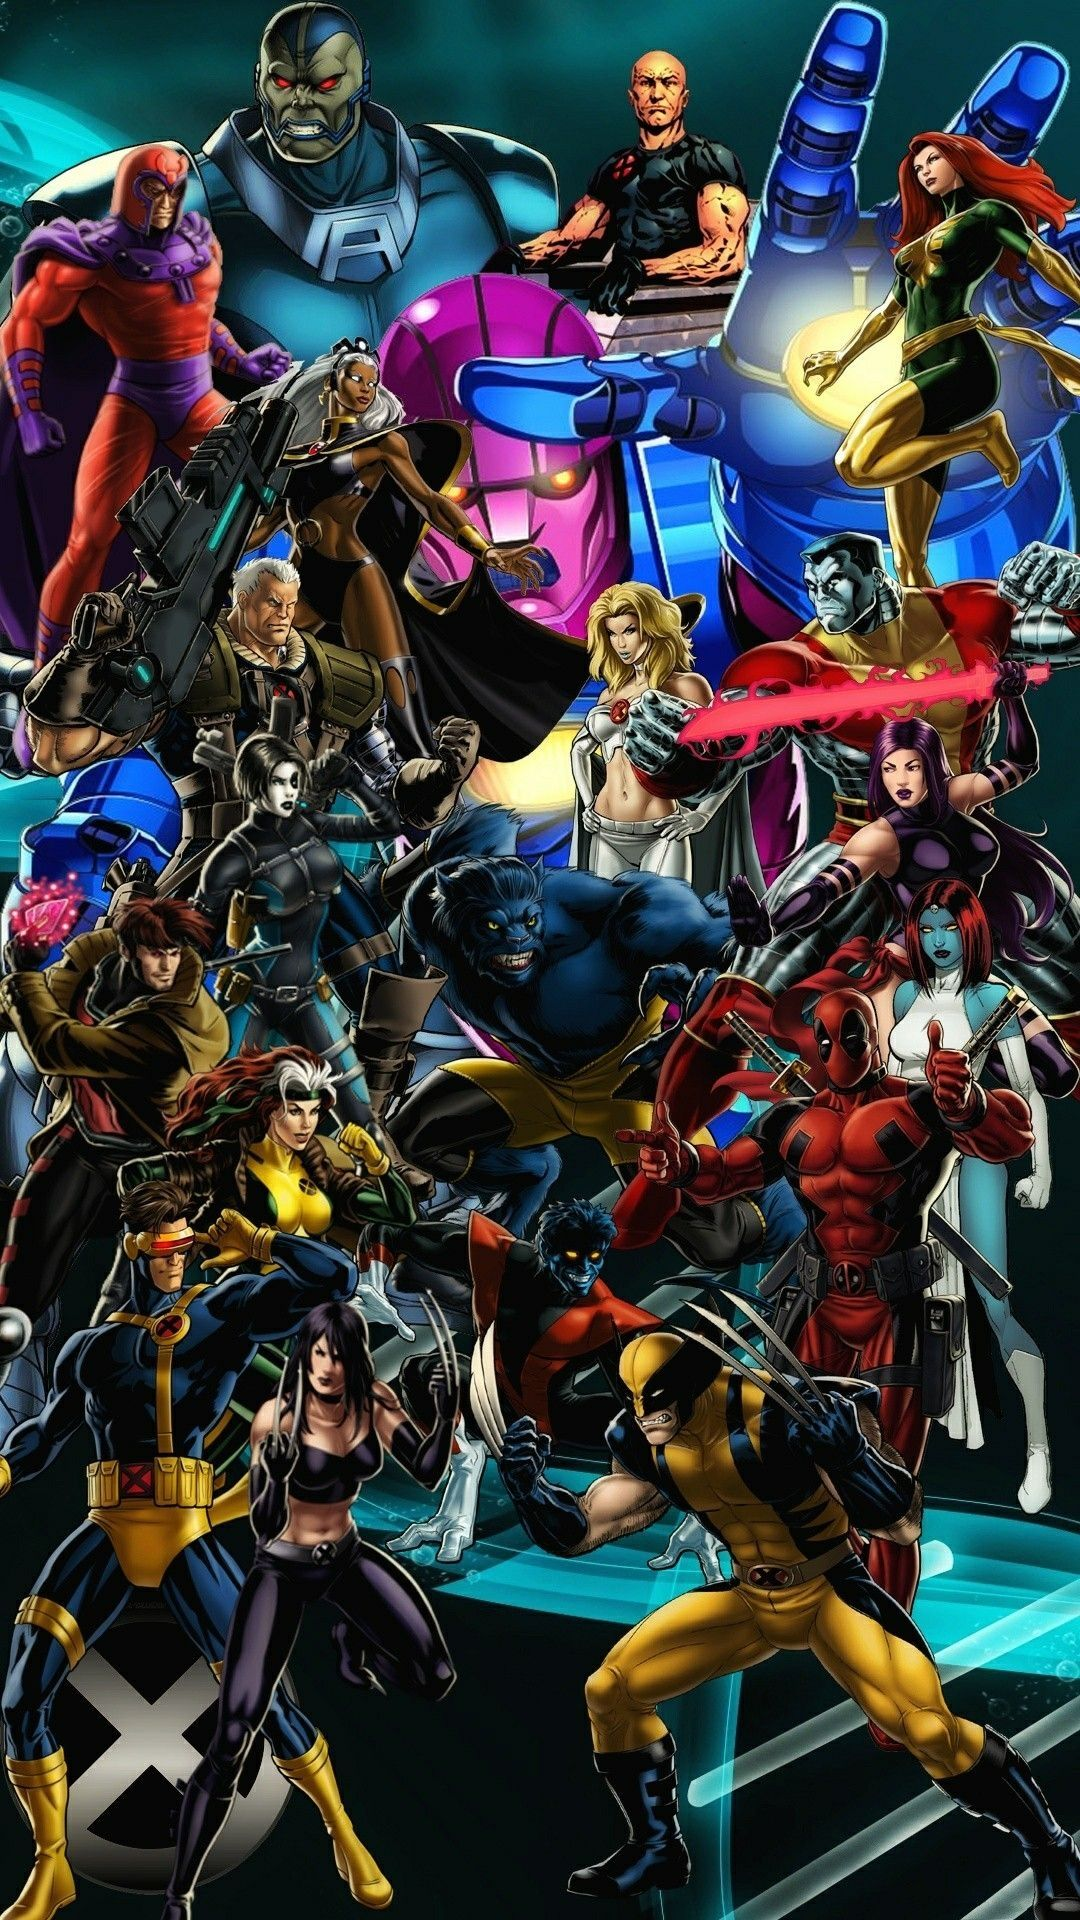 X Men Wallpaper For Smartphone Marvel Comics Comics For Amazing Cartoon Smartphone Wallpapers In 2020 Marvel Xmen Marvel Comic Universe Marvel Comics